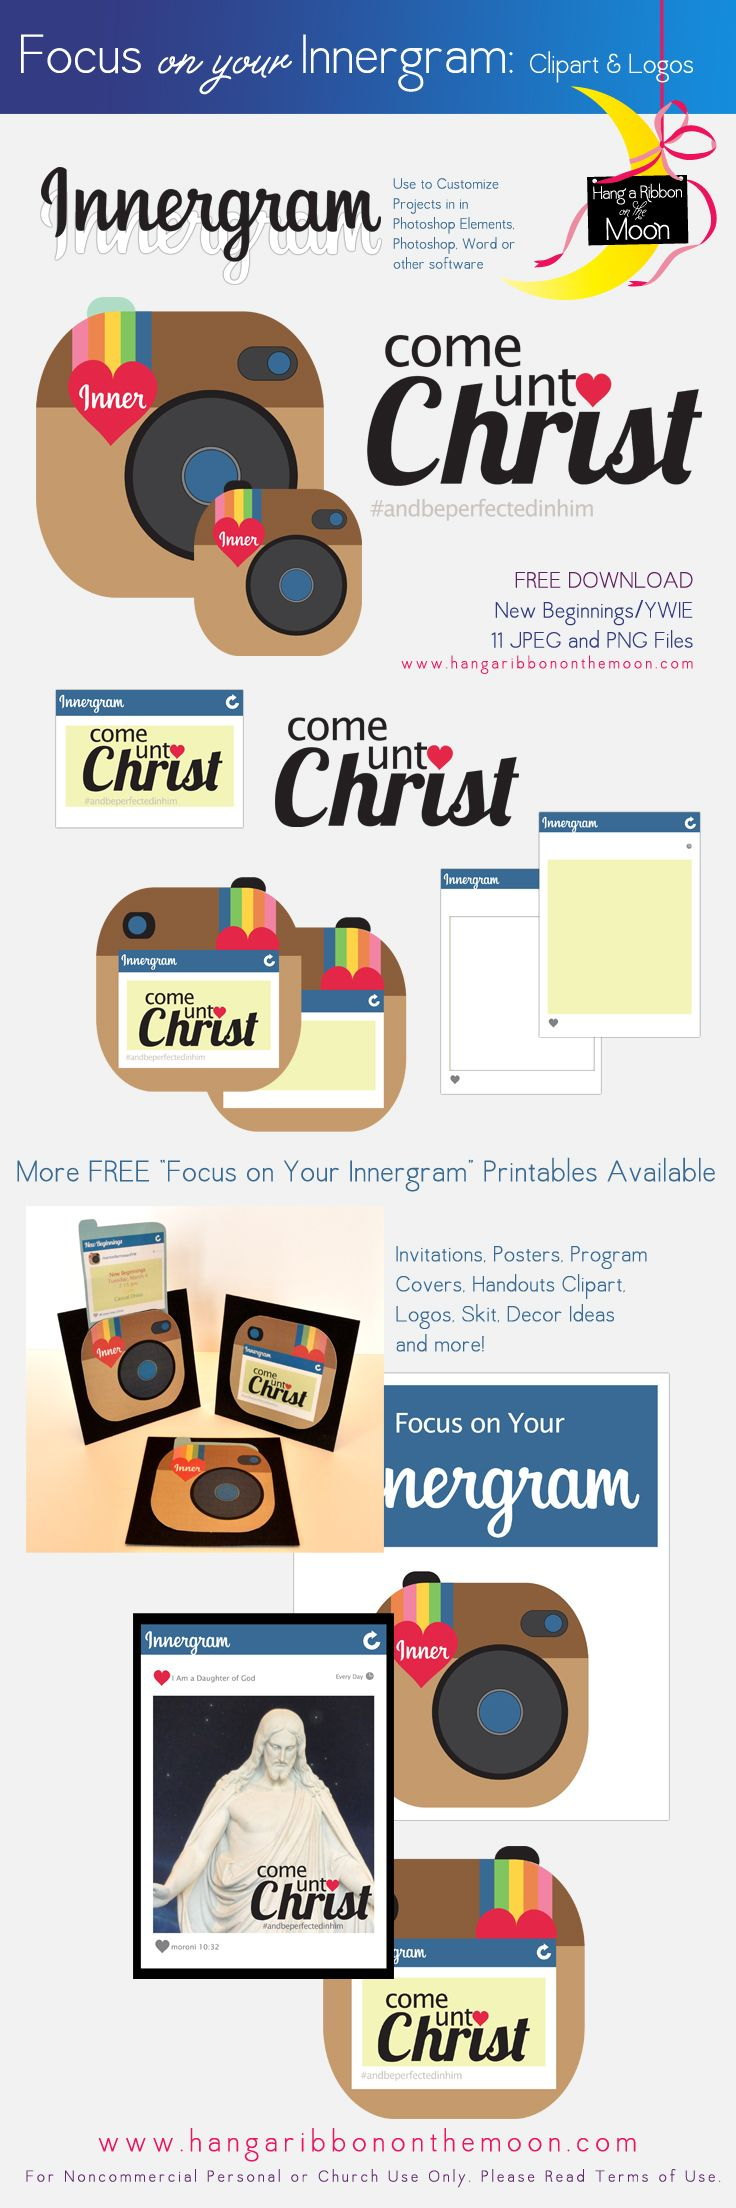 Focus on Your Innergram: Clipart & Logos for New Beginnings, YWIE, Girls Camp, Youth Conf. Tons of FREE Printables!